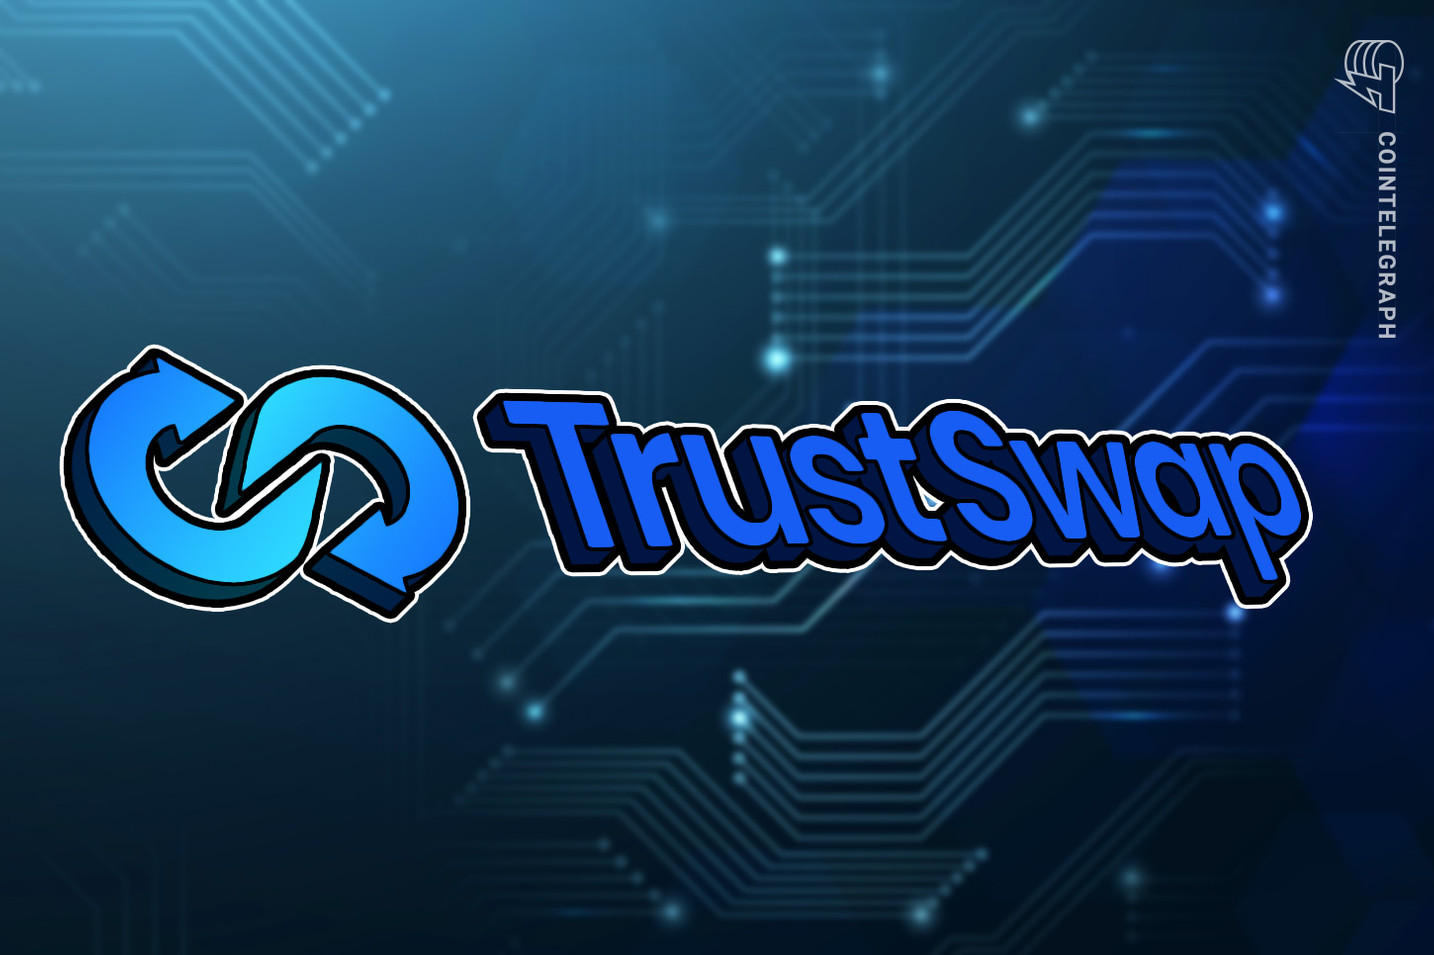 TrustSwap announces the acquisition of The Crypto App